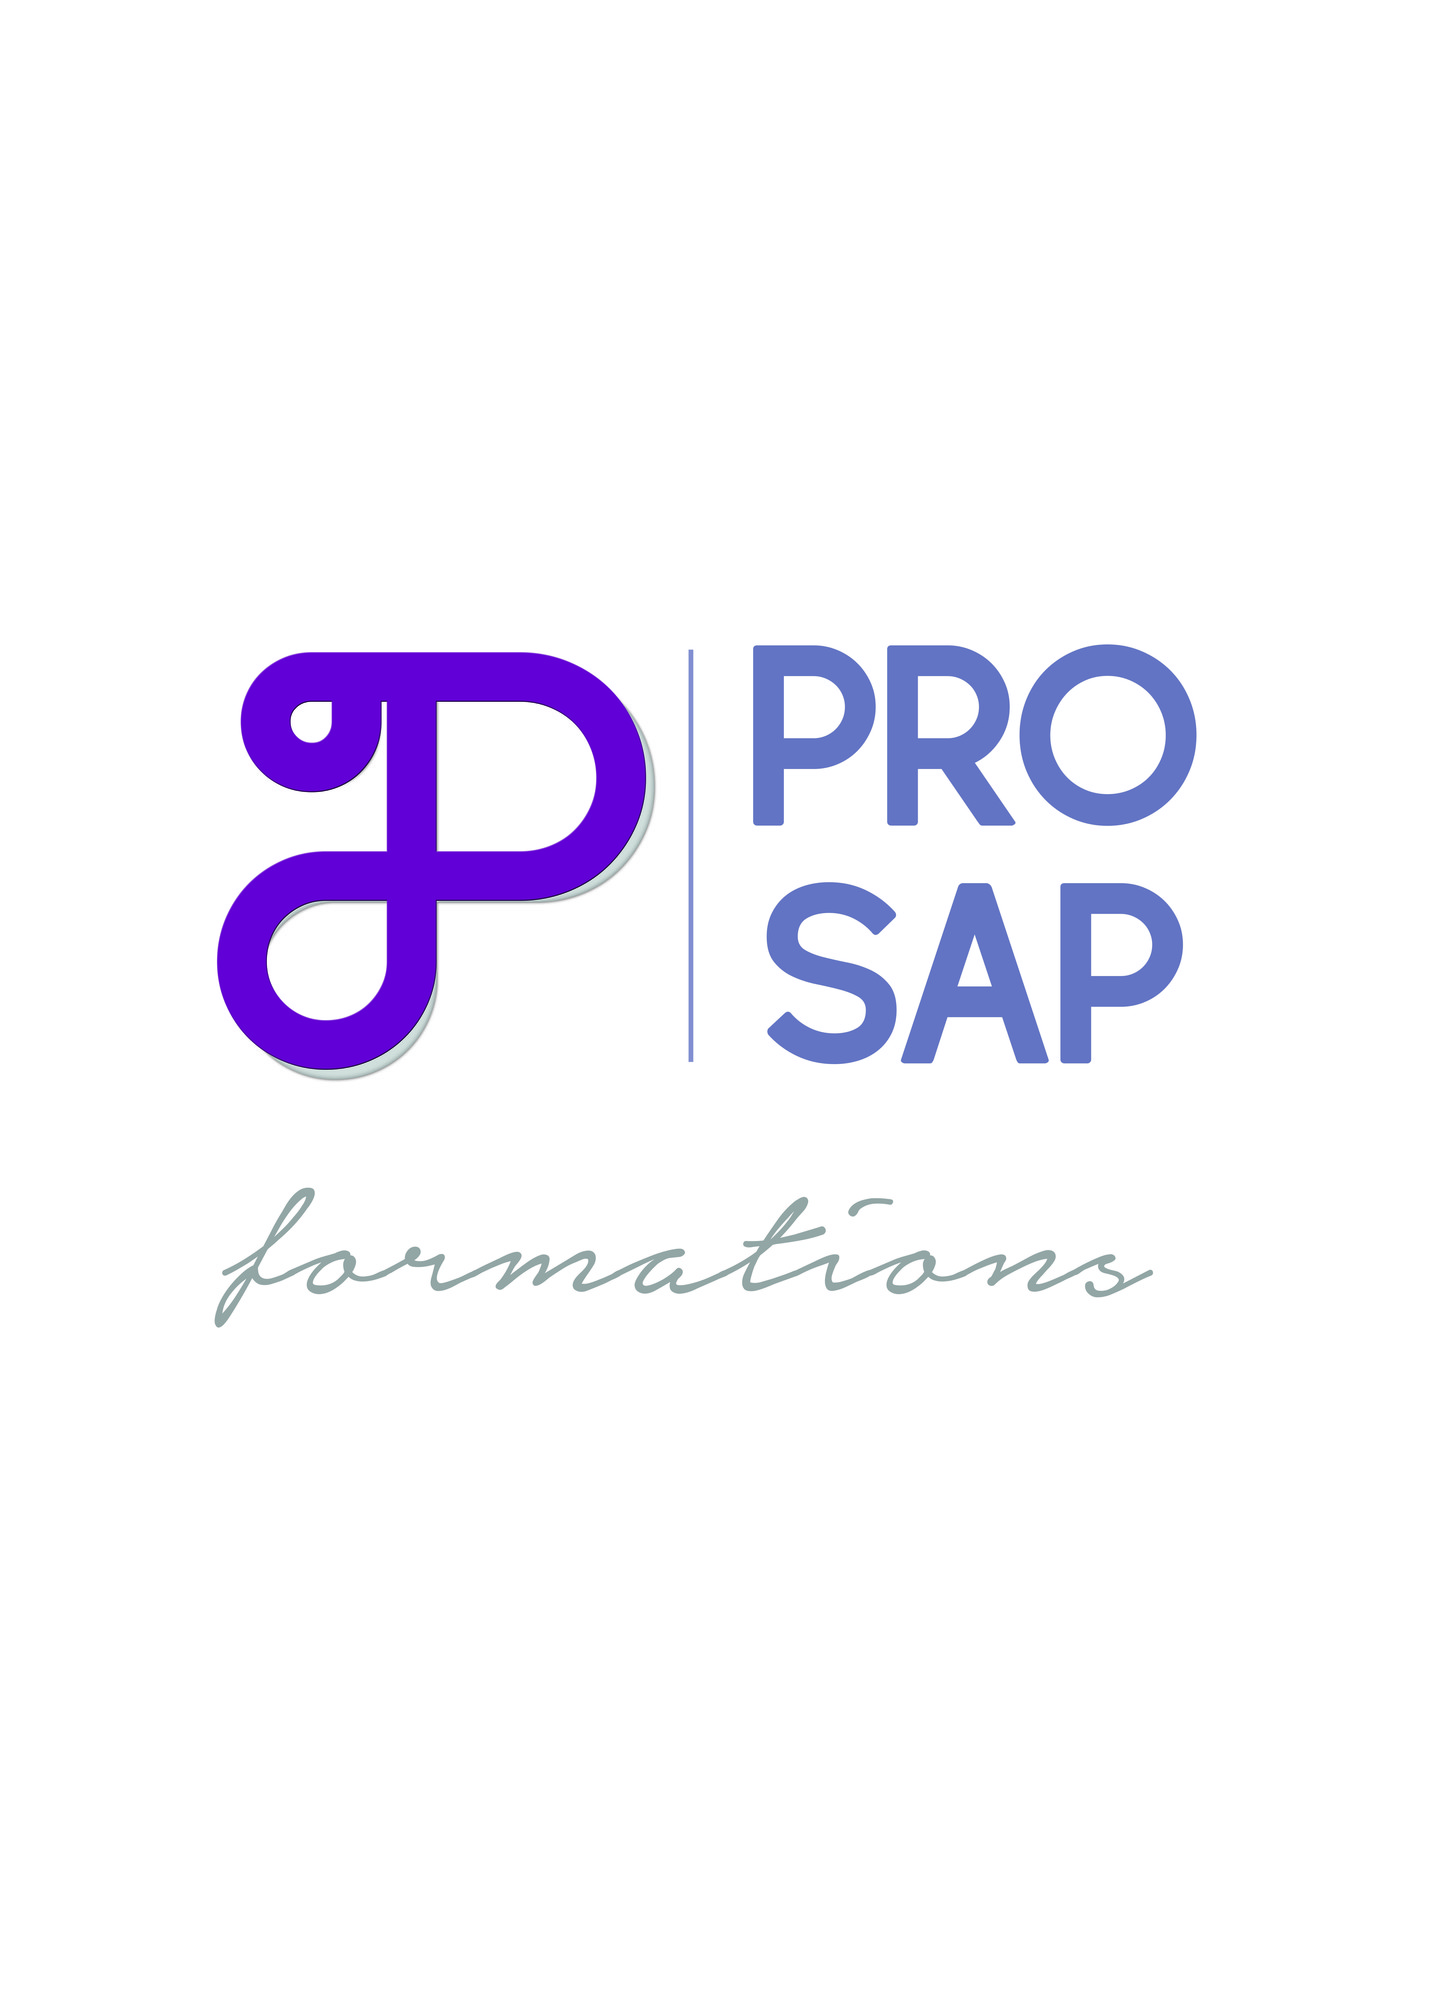 PRO SAP FORMATIONS